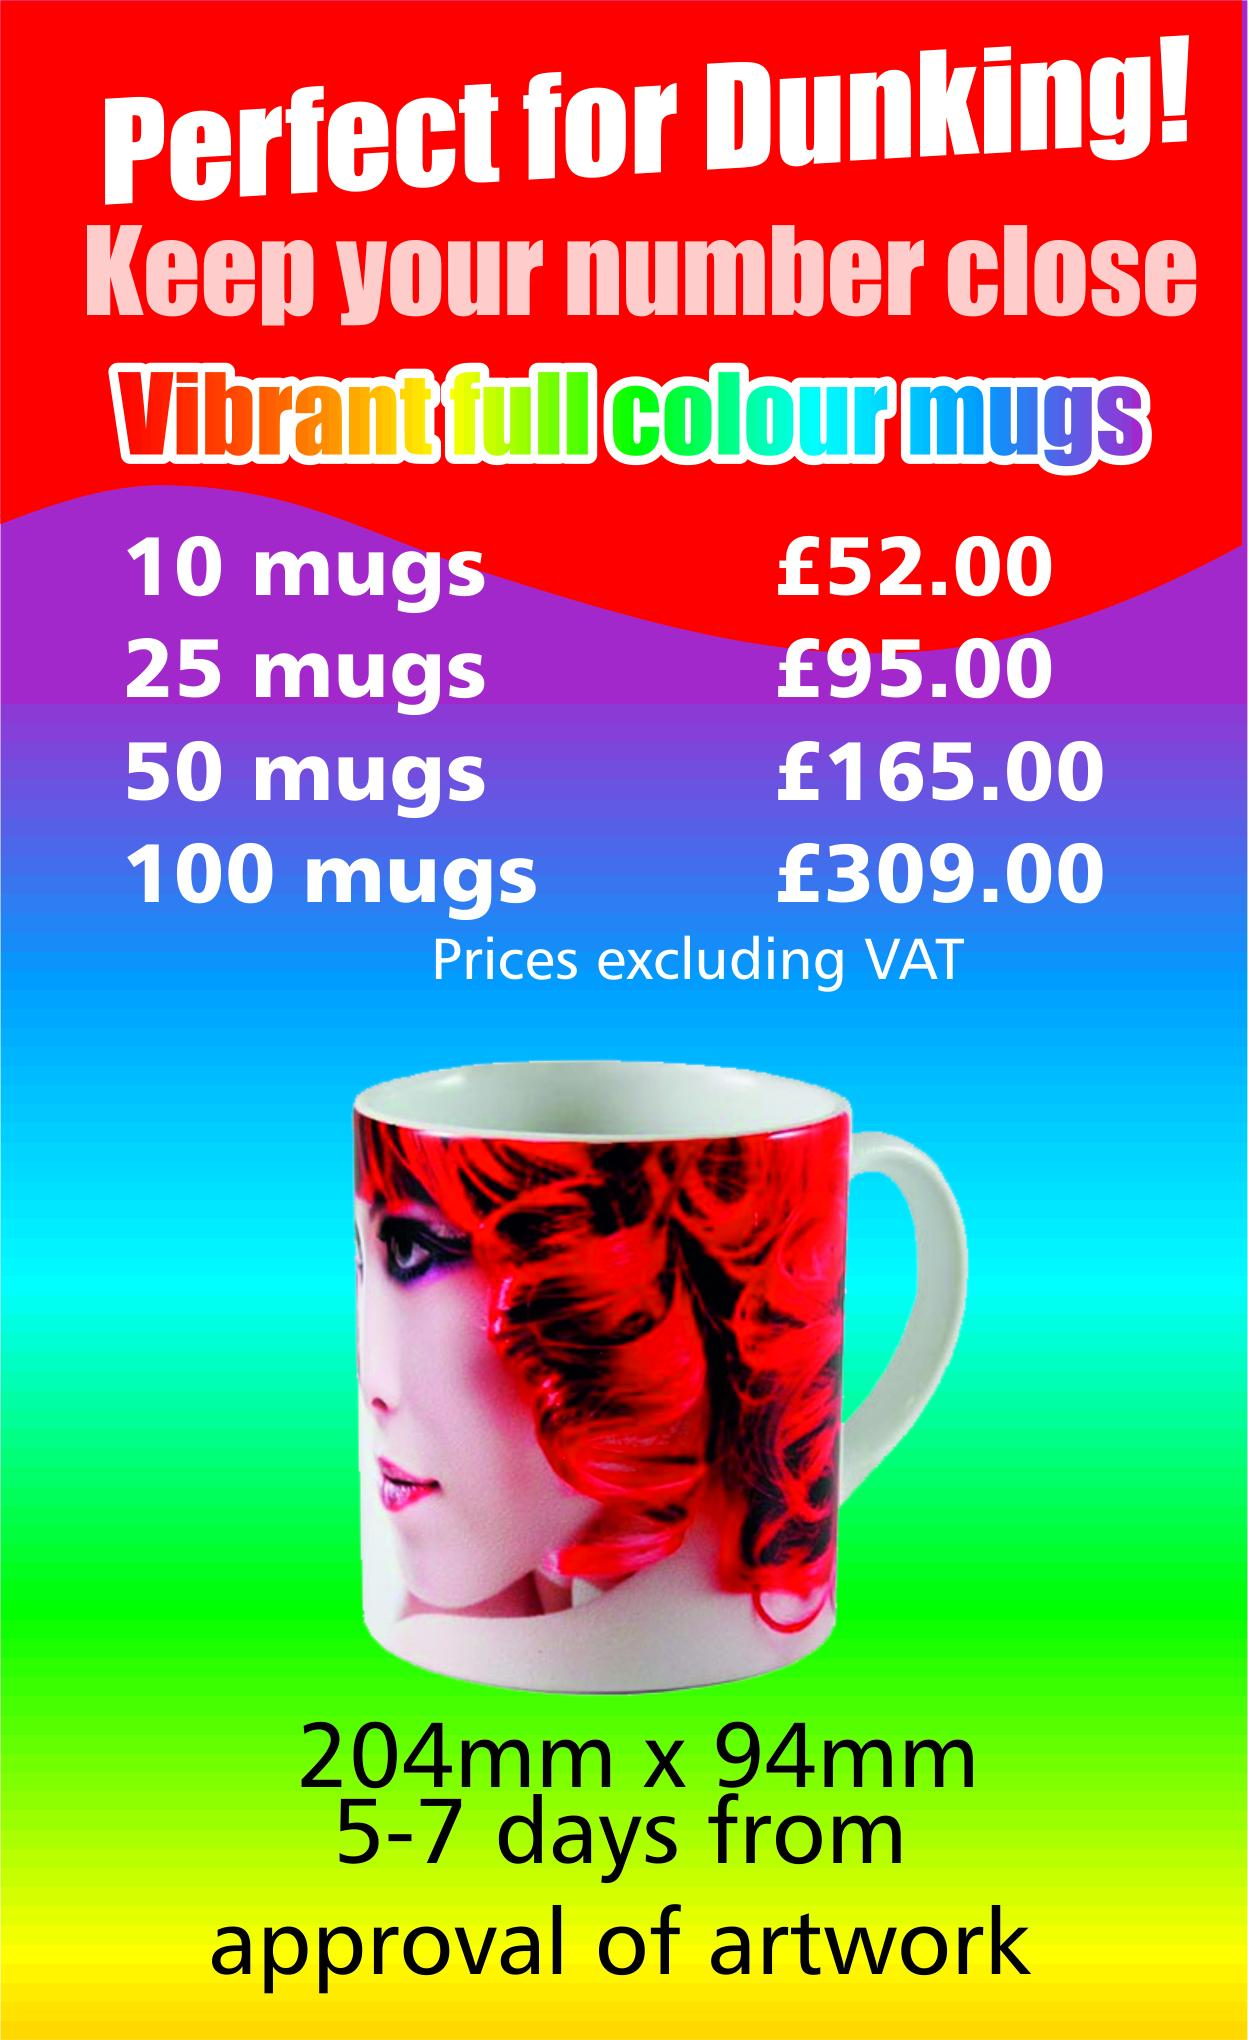 Full colour print on durham mugs